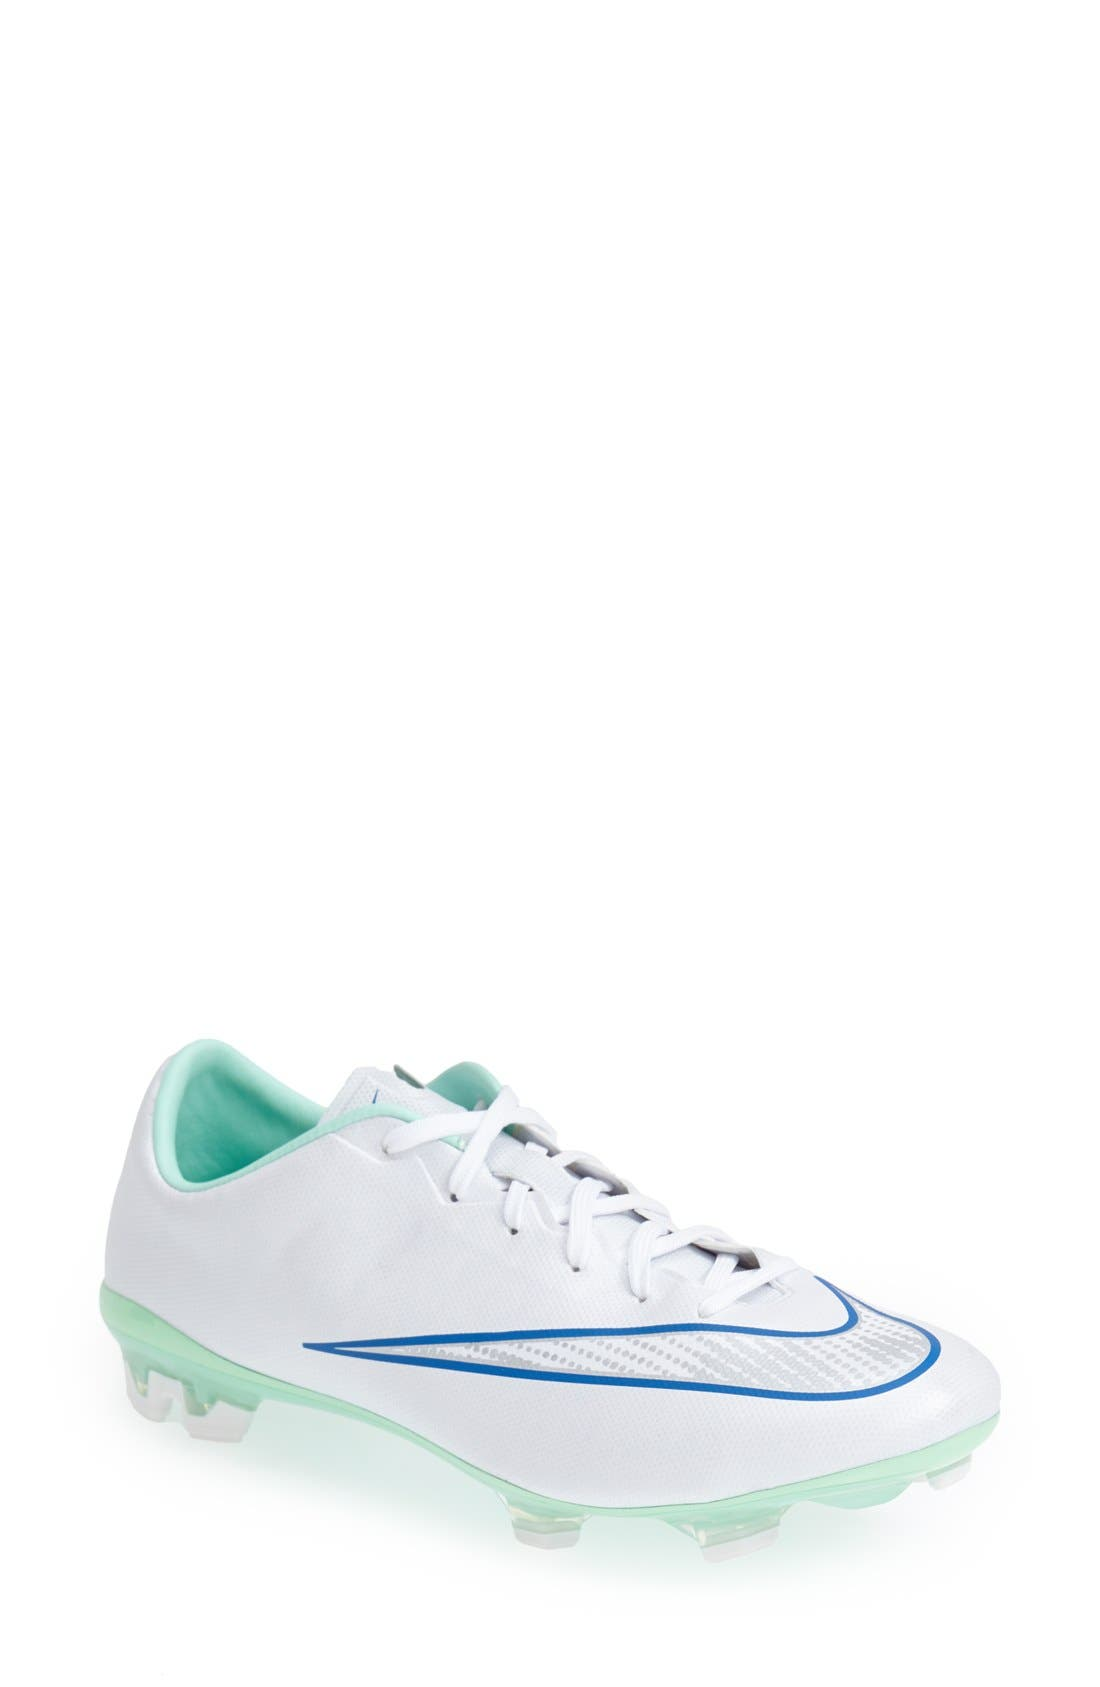 Main Image - Nike 'Mercurial Veloce 2' Firm Ground Soccer Cleat (Women)